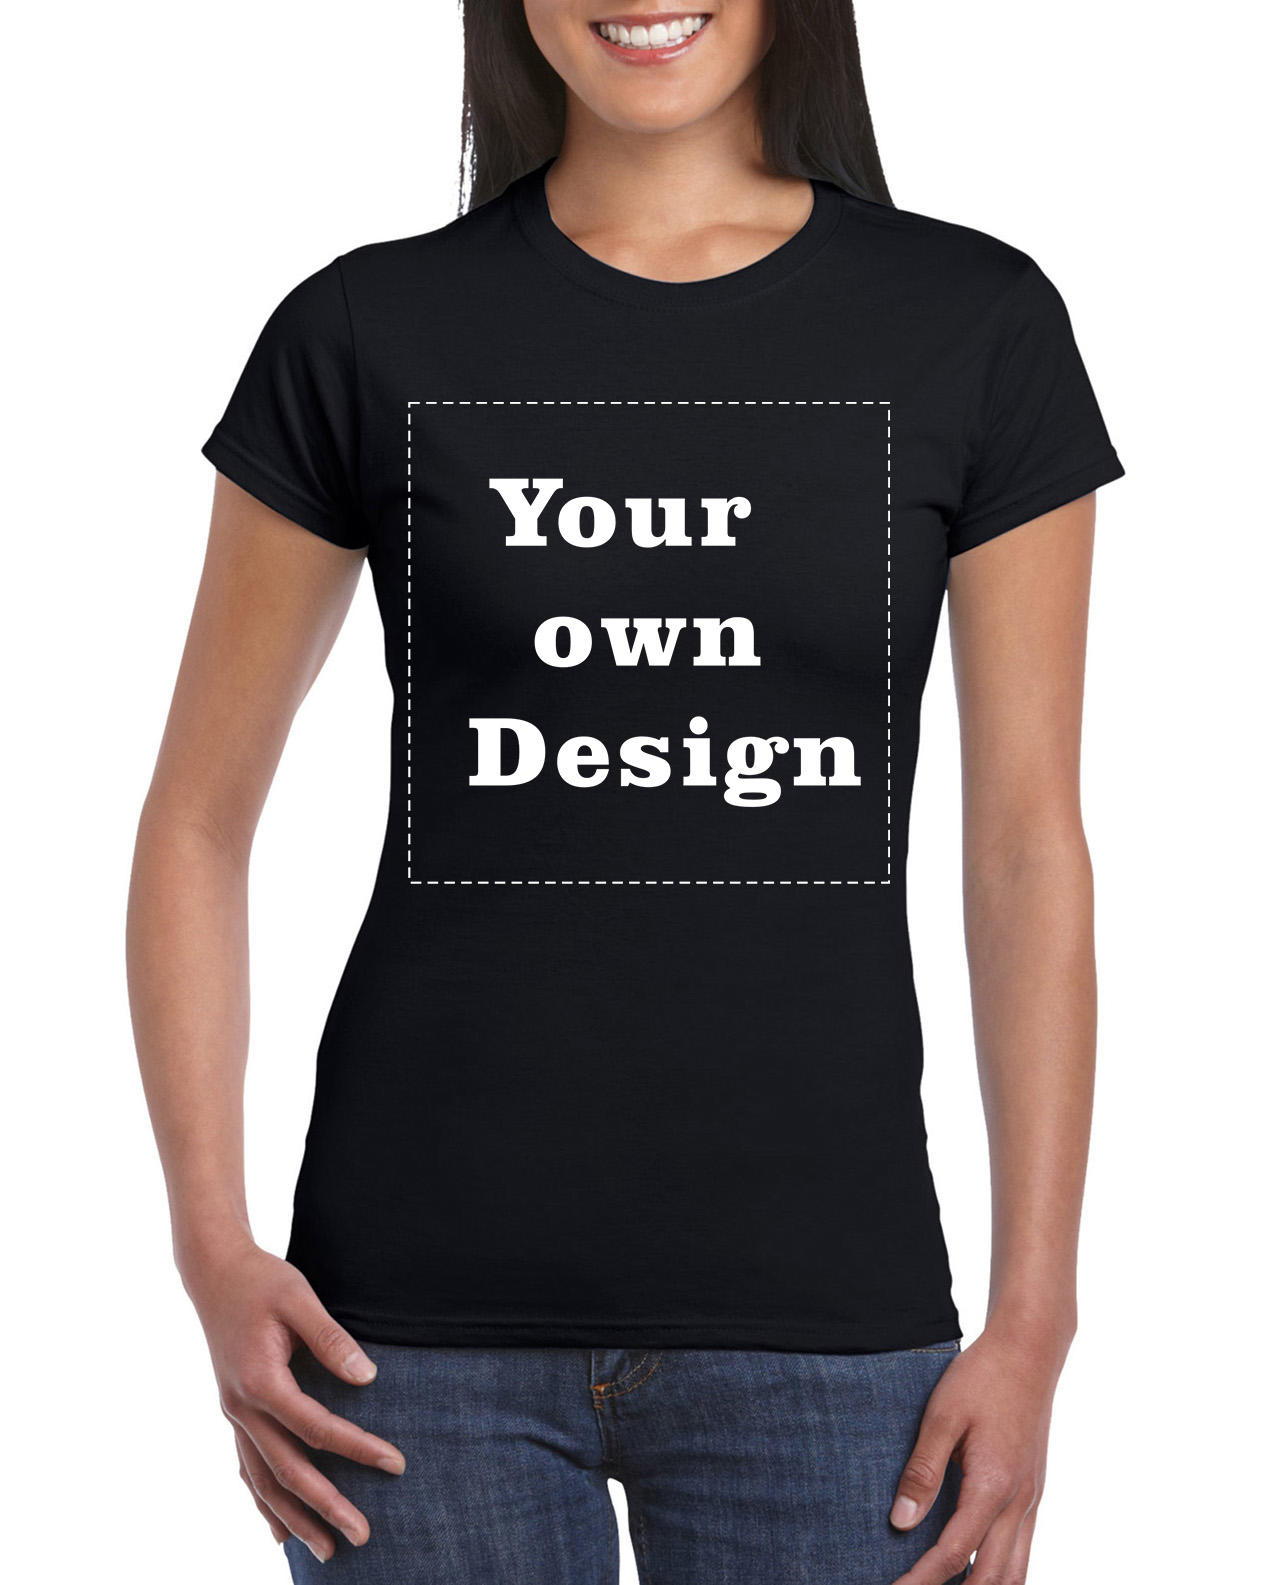 Design your own eco-friendly t-shirt - 2016 Women Black Your Own Design T Shirt Novelty Tops Lady Custom Printed Short Sleeve Tees